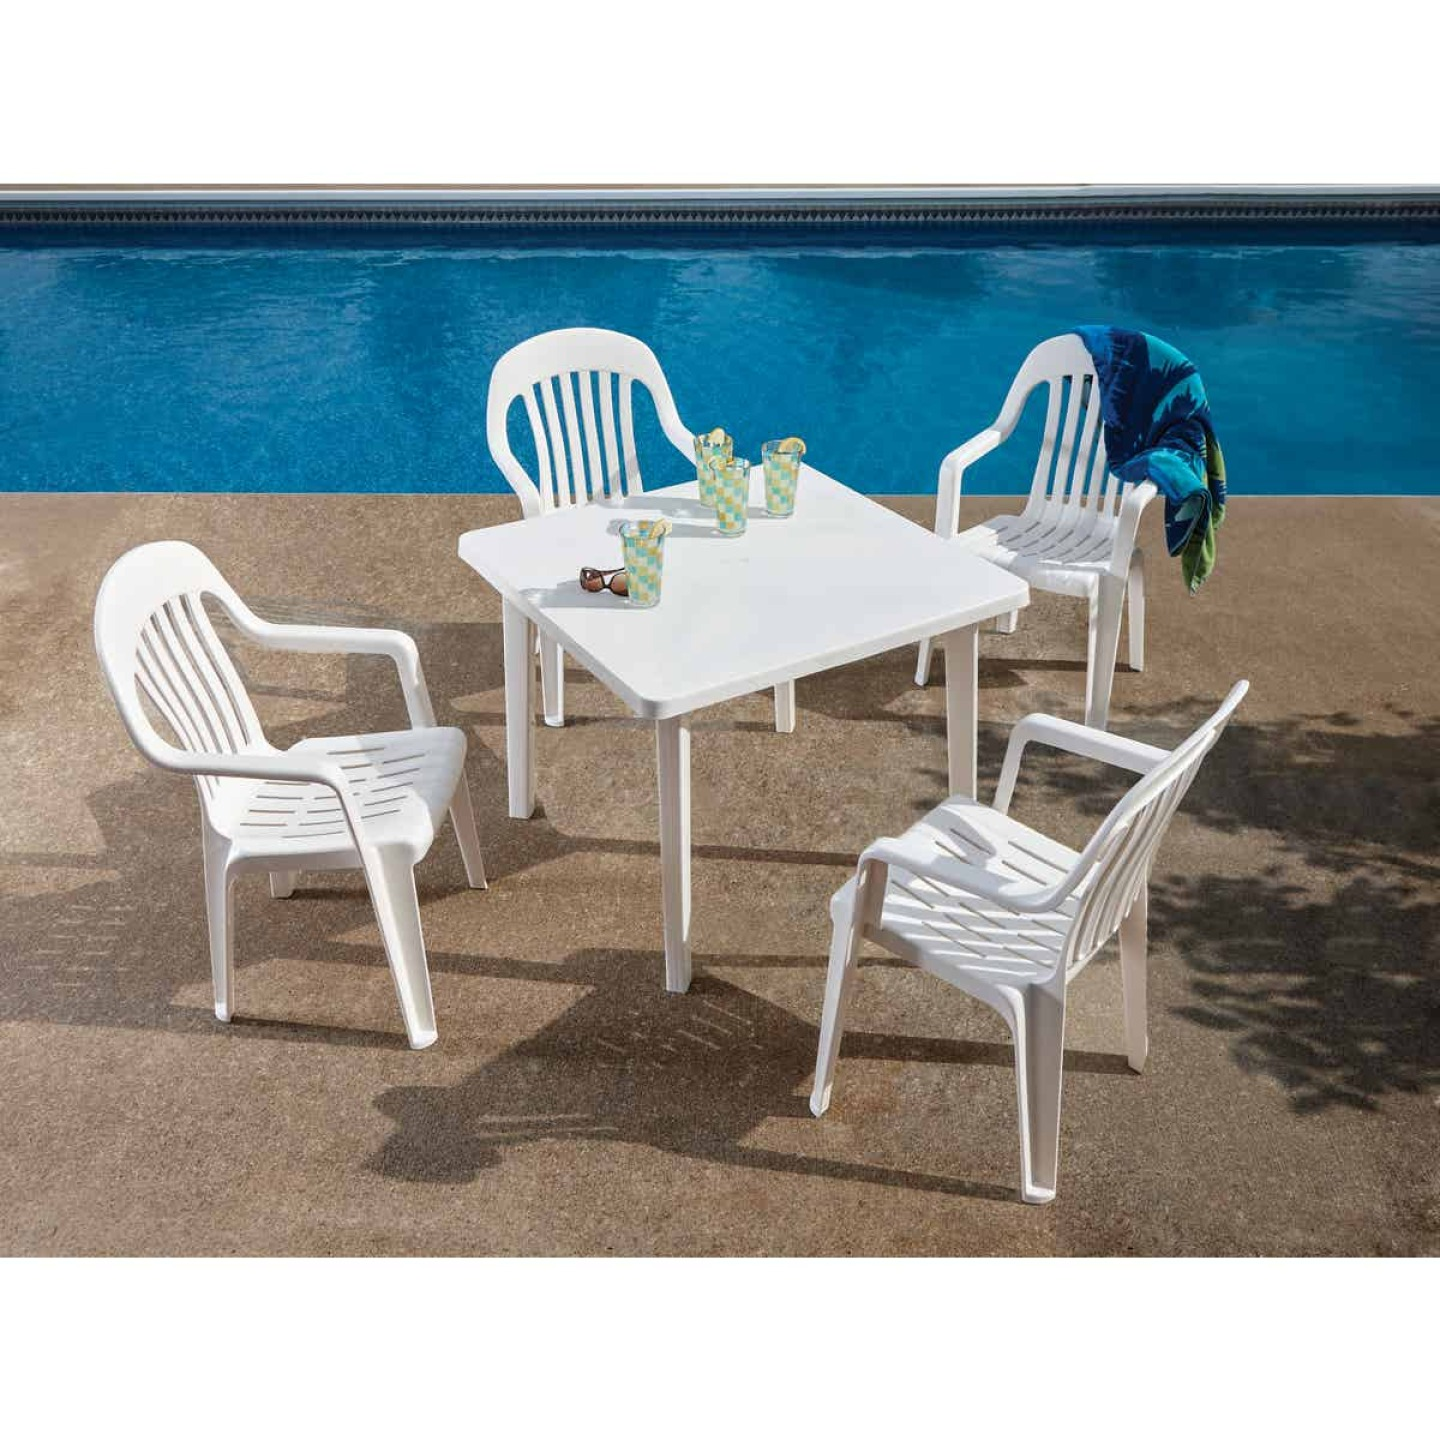 Adams 36 In. Square White Resin Table Image 2